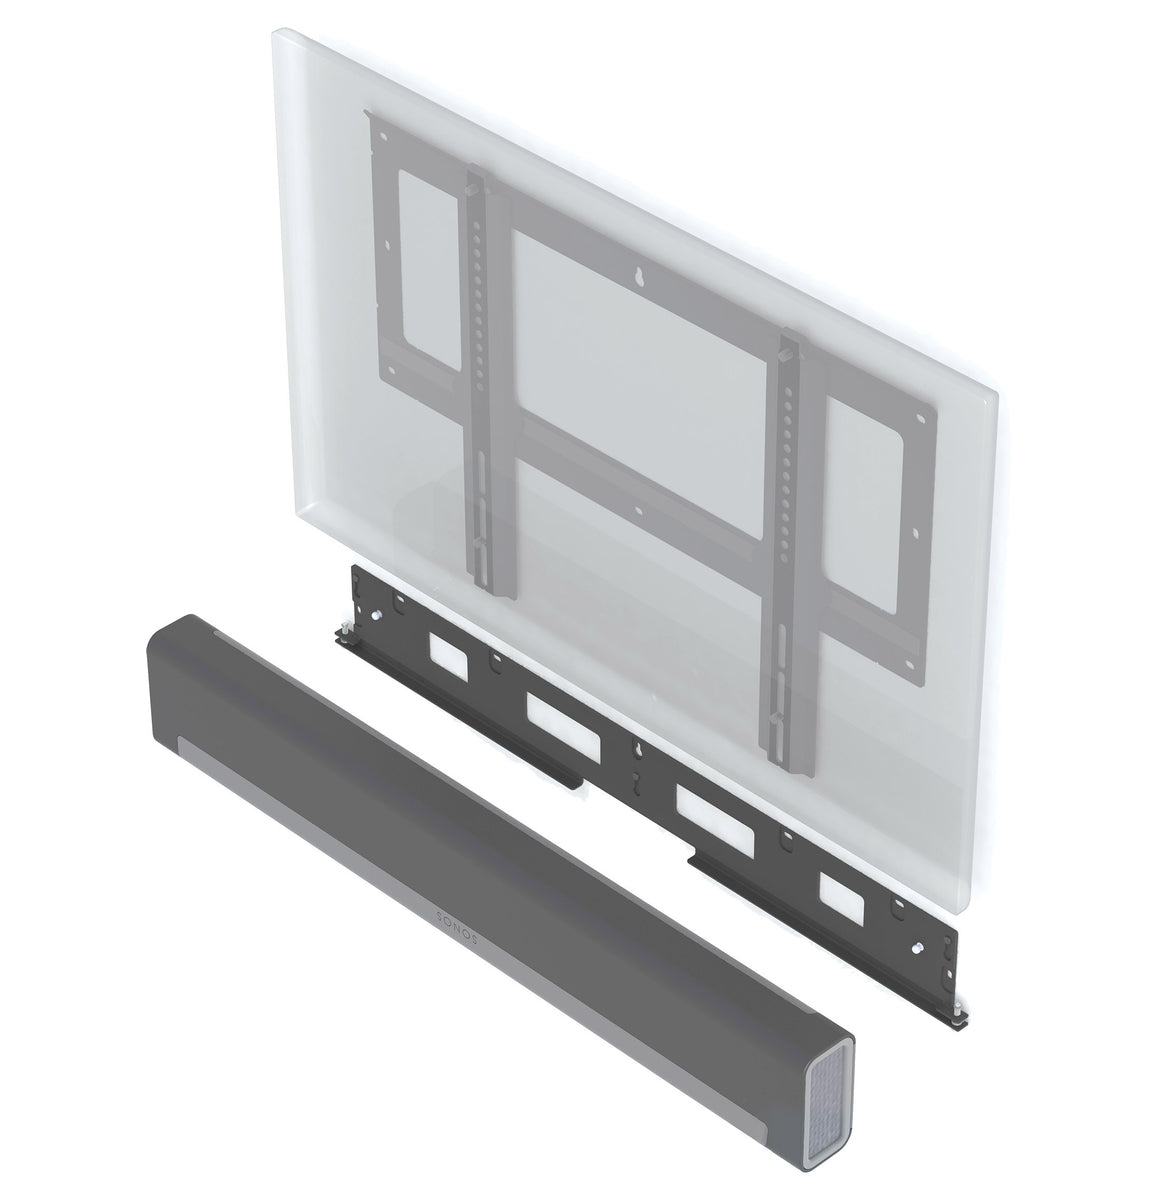 Flexson | Flat To Wall Mount for Sonos Playbar/TV |  Melbourne Hi Fi1